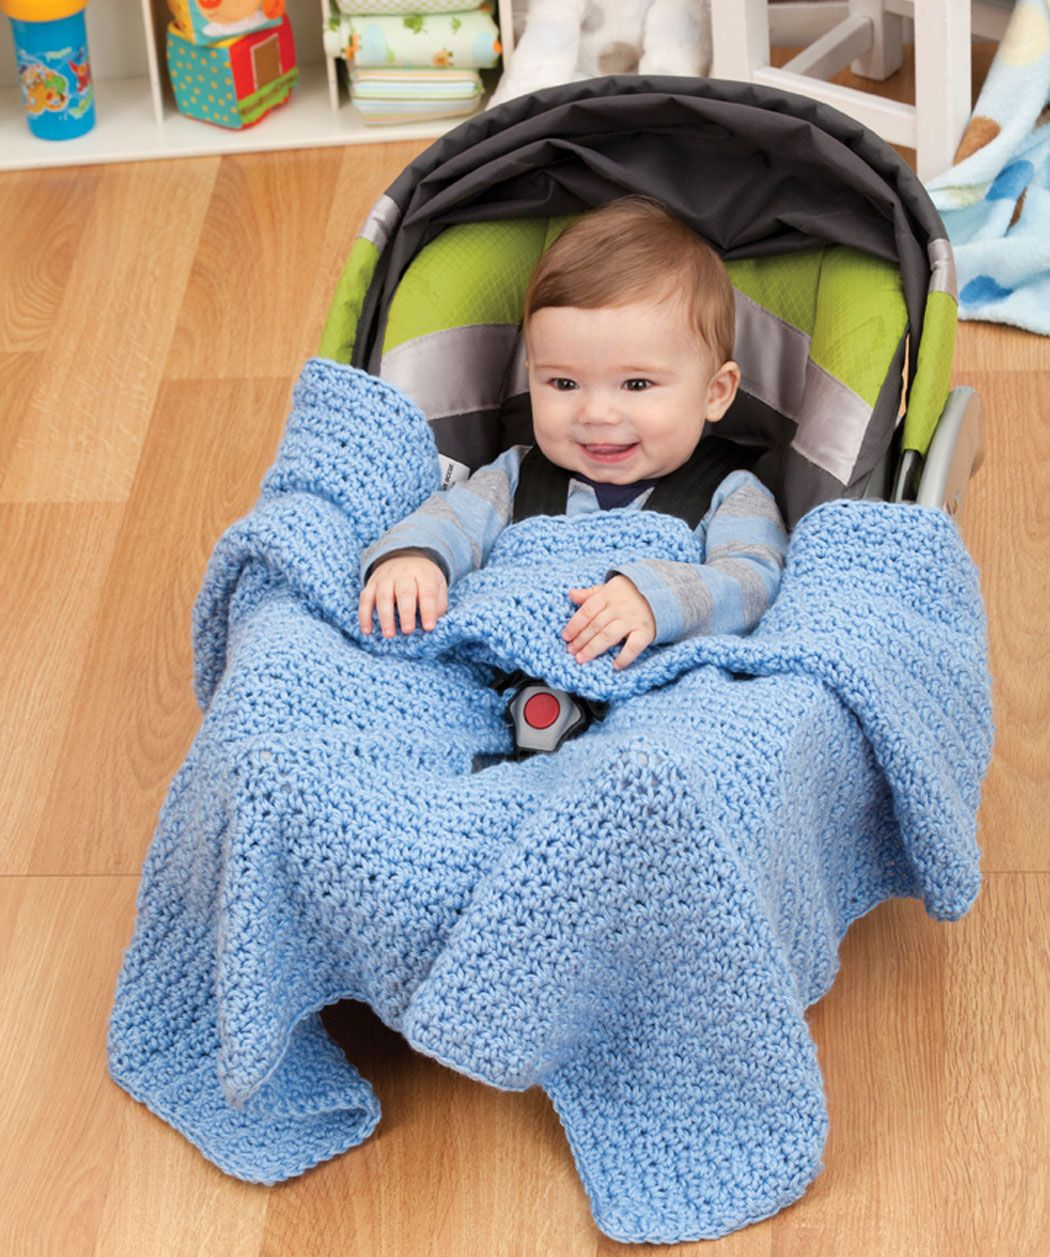 Baby Car Seat Blanket Free Pattern Car Seat Blanket Pattern By Pamela Greswolde Crochet